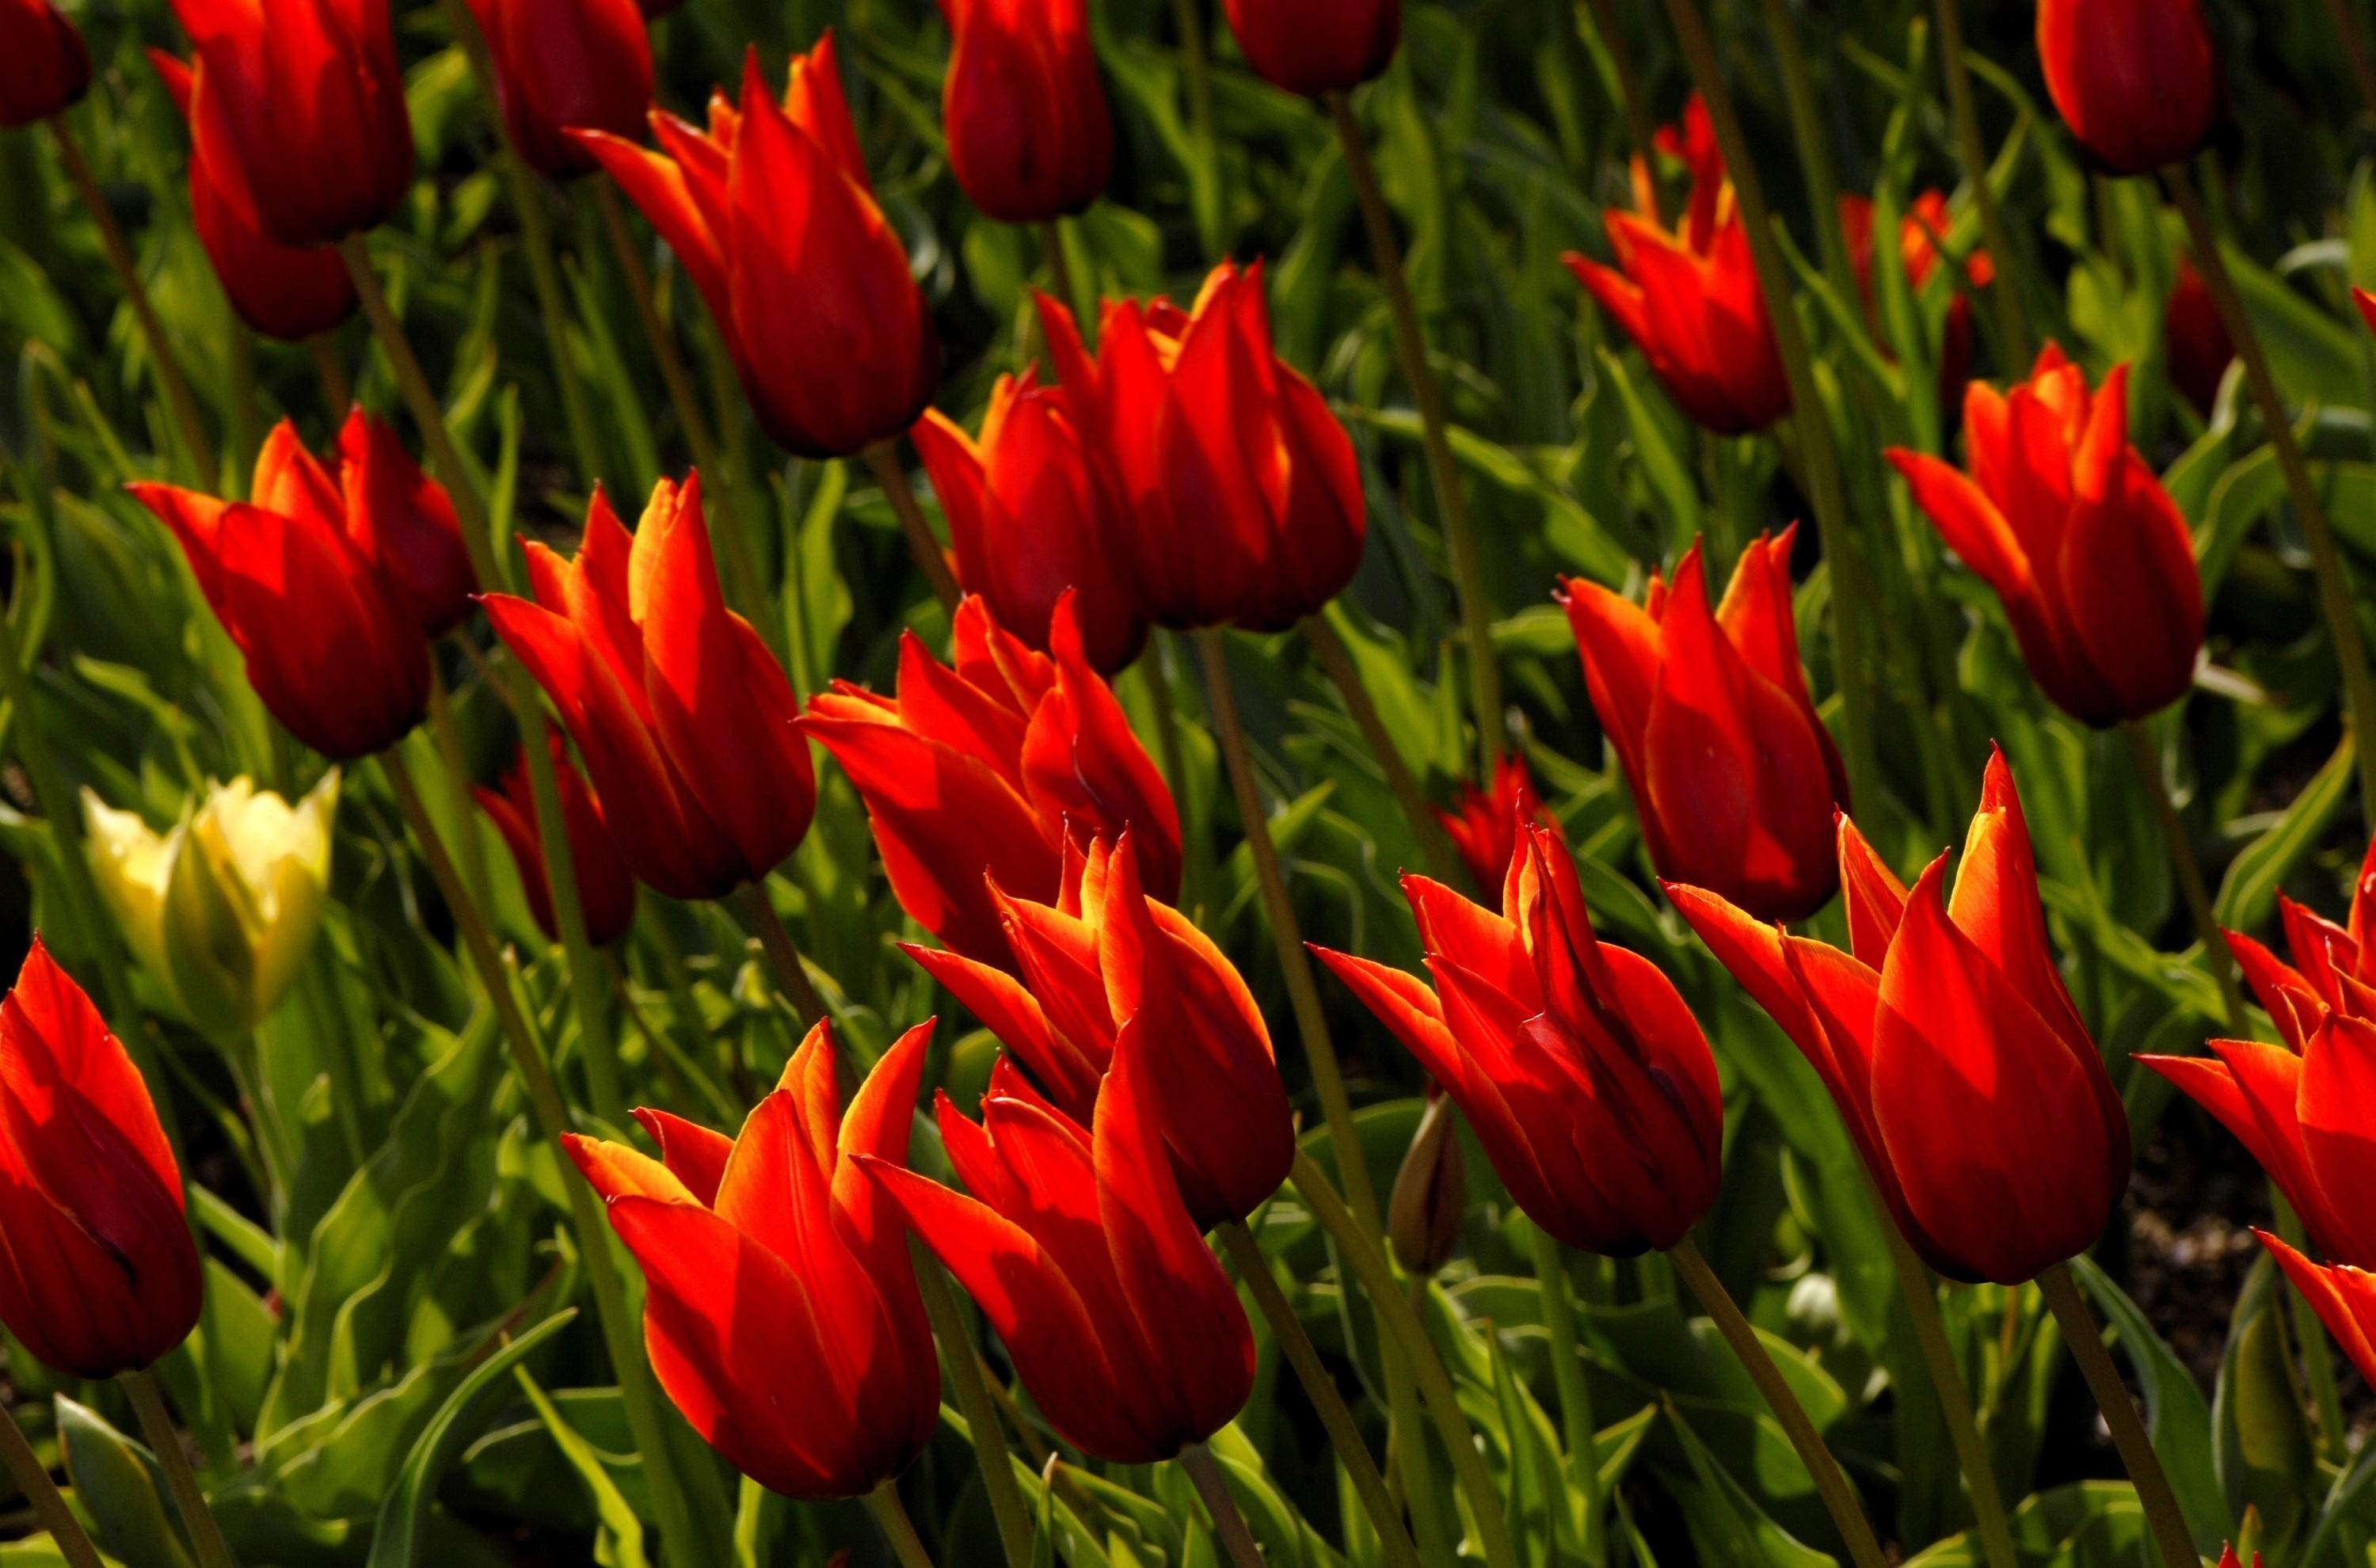 128716 Screensavers and Wallpapers Flower Bed for phone. Download Flowers, Tulips, Flower Bed, Flowerbed, Royal pictures for free